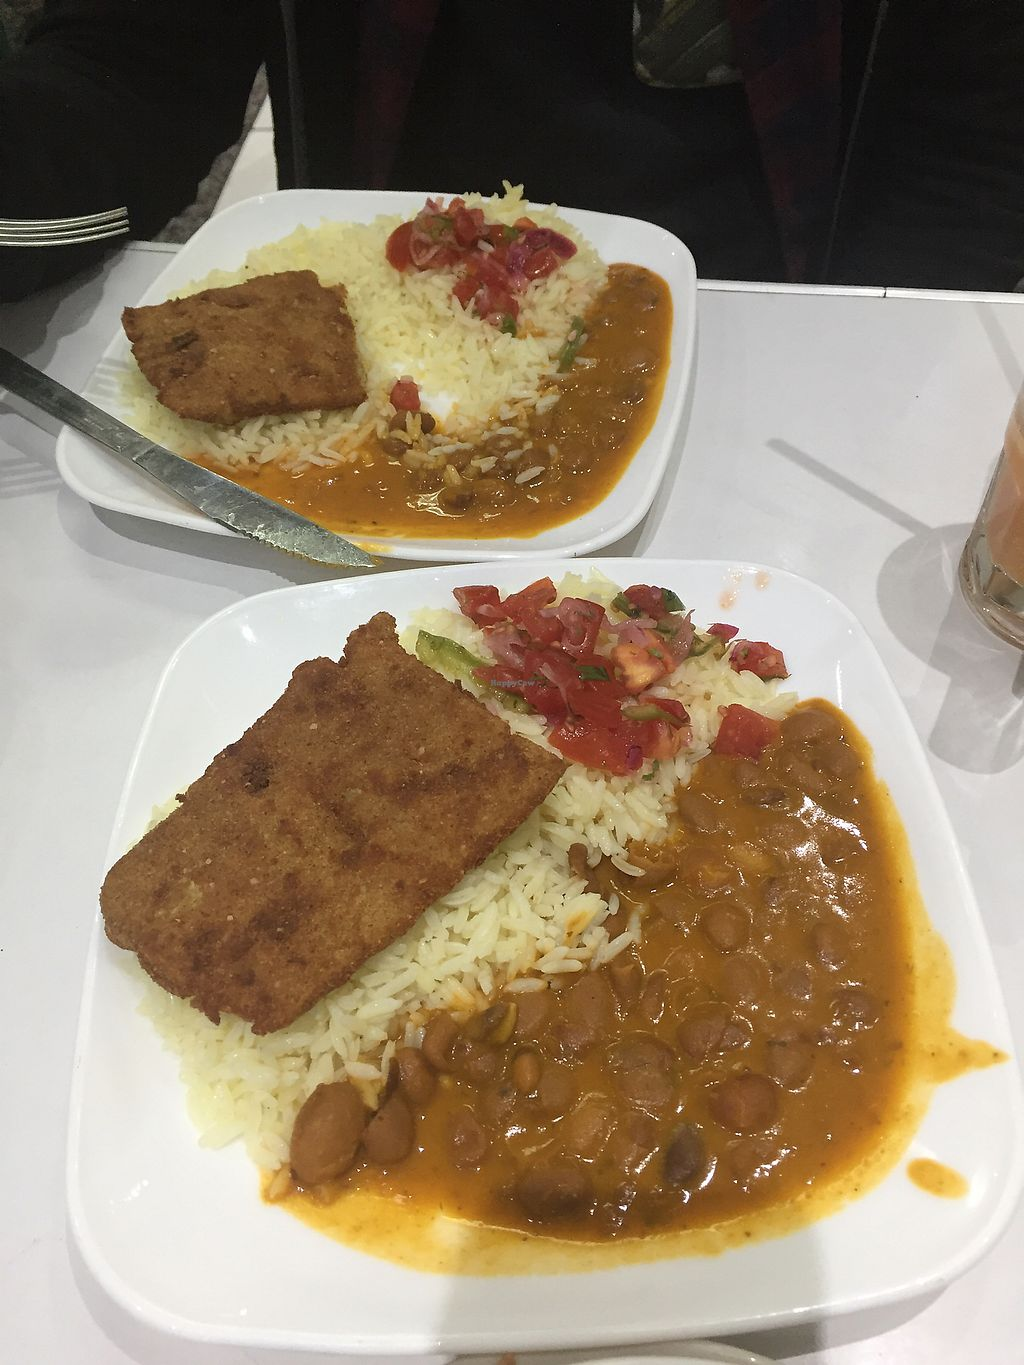 """Photo of Natural Vid Restaurante Vegetariano  by <a href=""""/members/profile/Dianebg"""">Dianebg</a> <br/>Soy meat, bean stew and rice  <br/> November 17, 2017  - <a href='/contact/abuse/image/97658/326422'>Report</a>"""